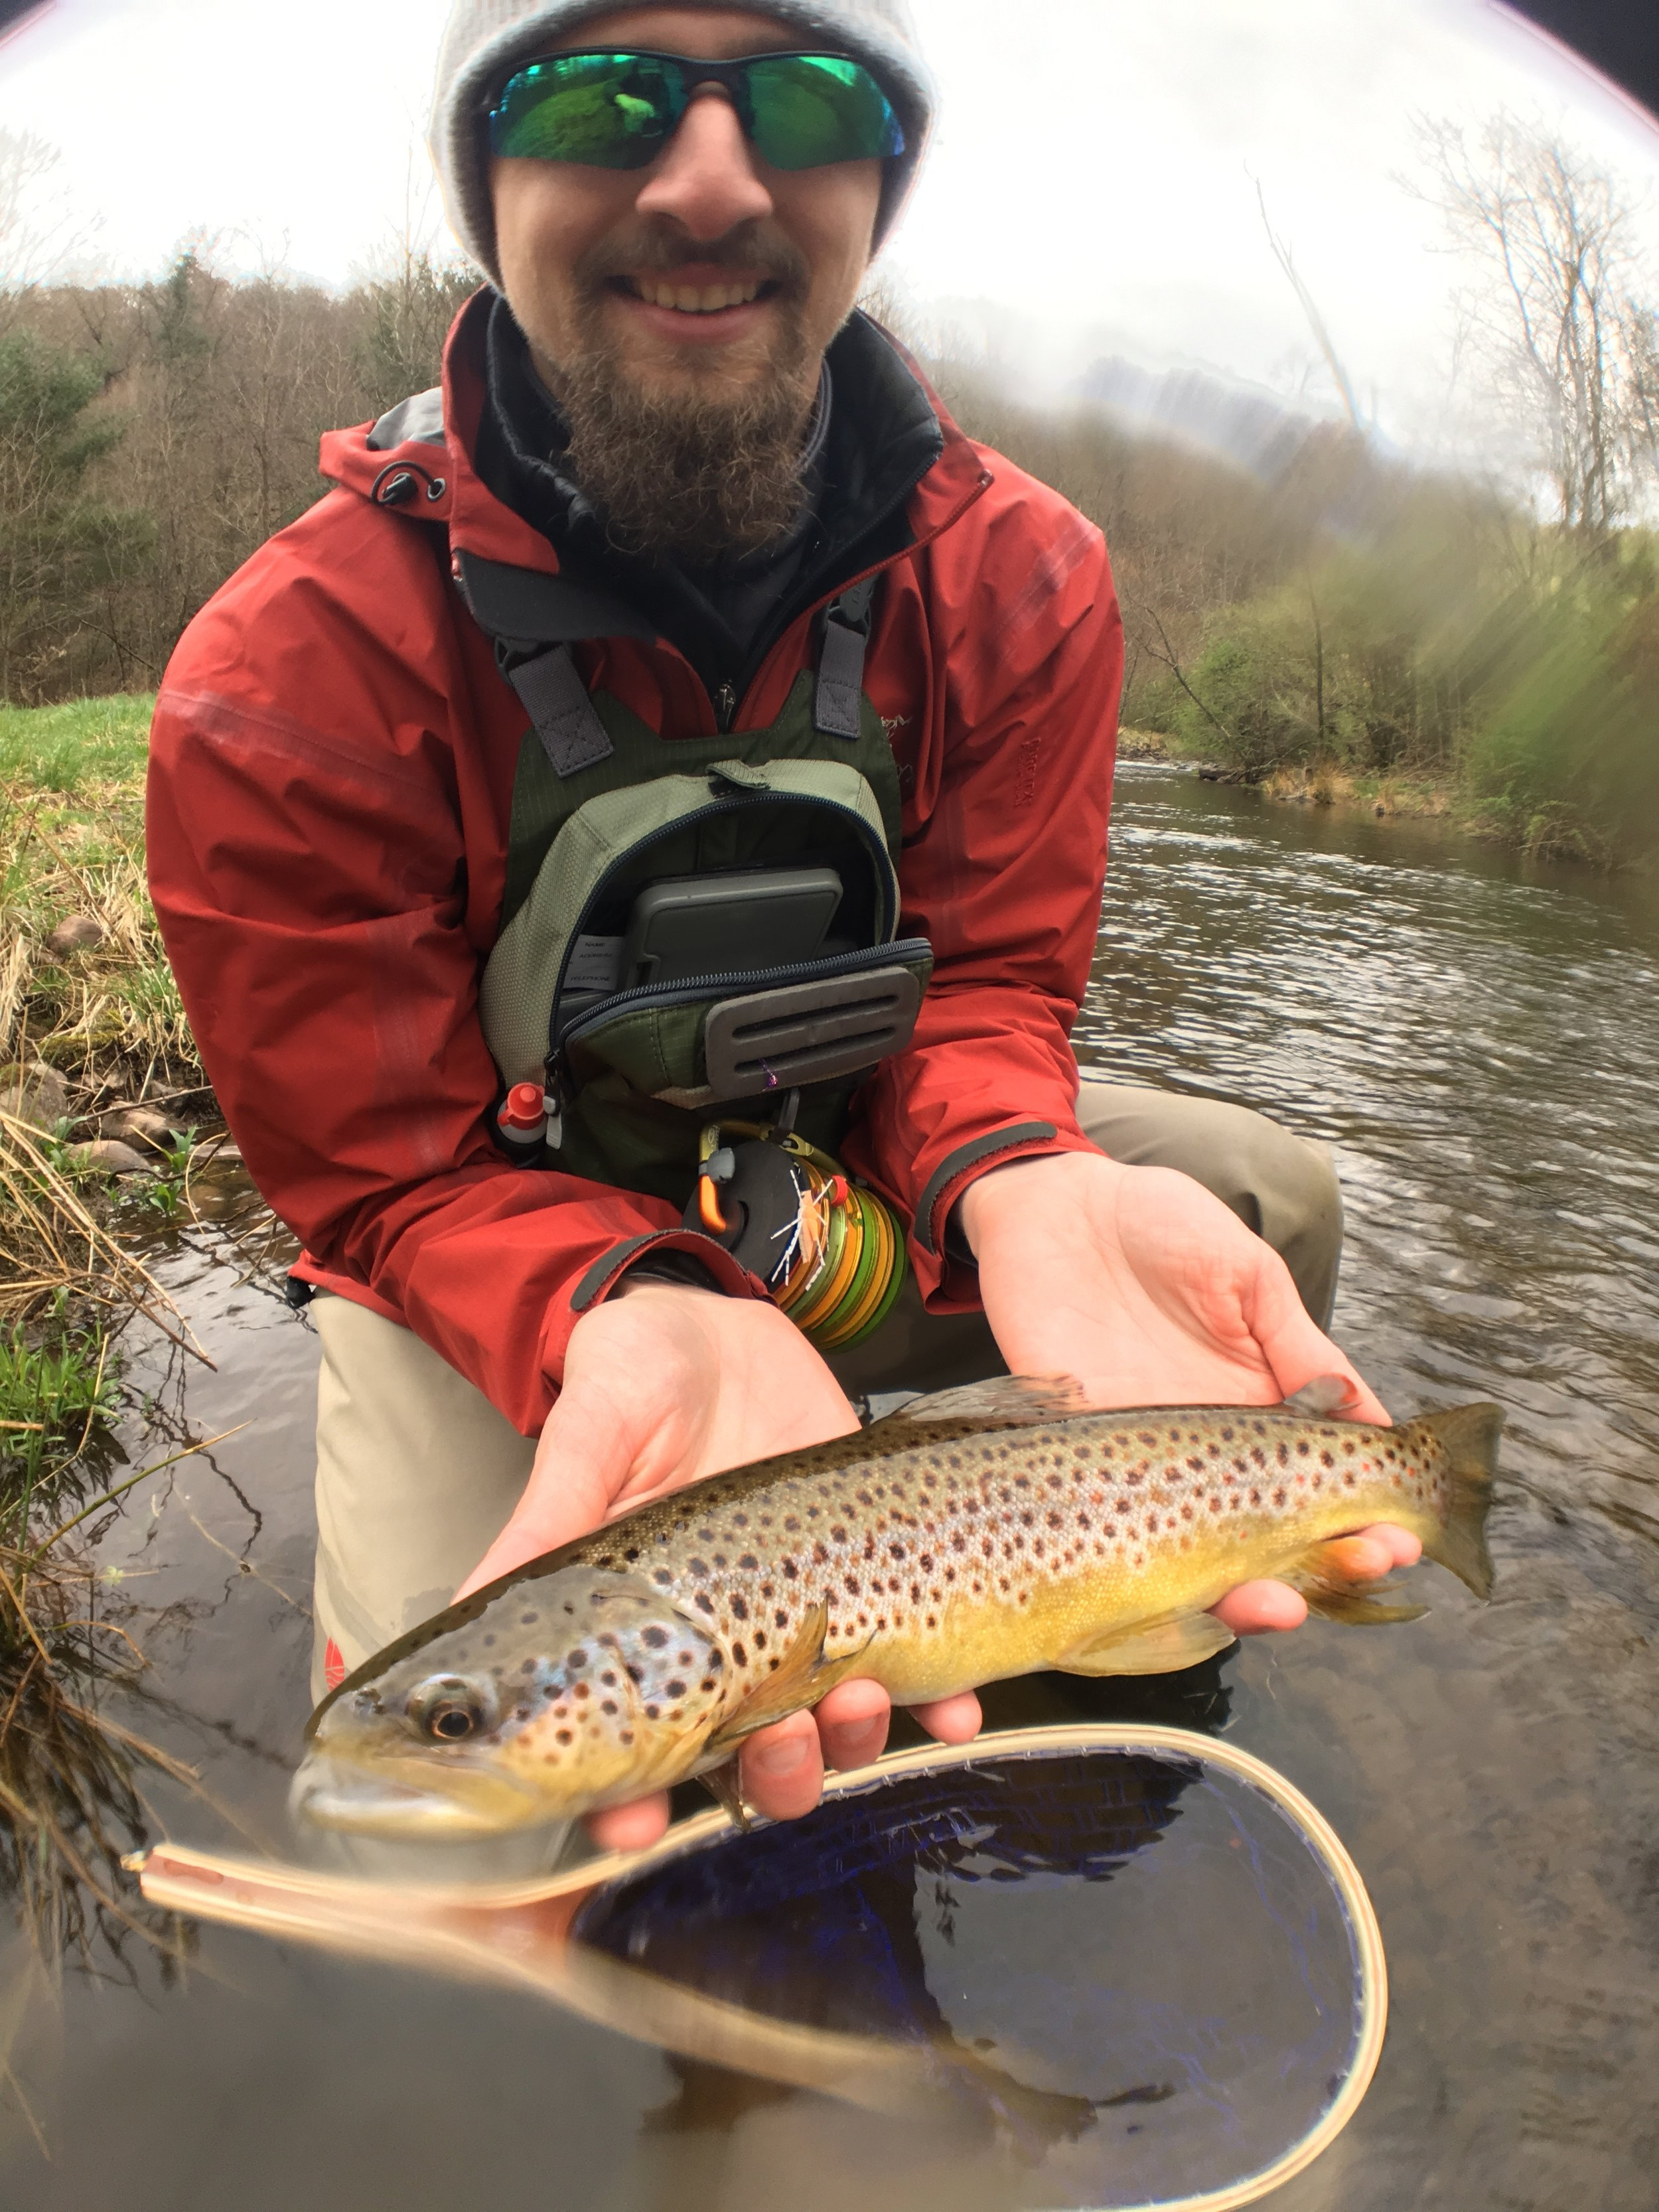 #2 Brownie on a high mountain Brookie stream!?